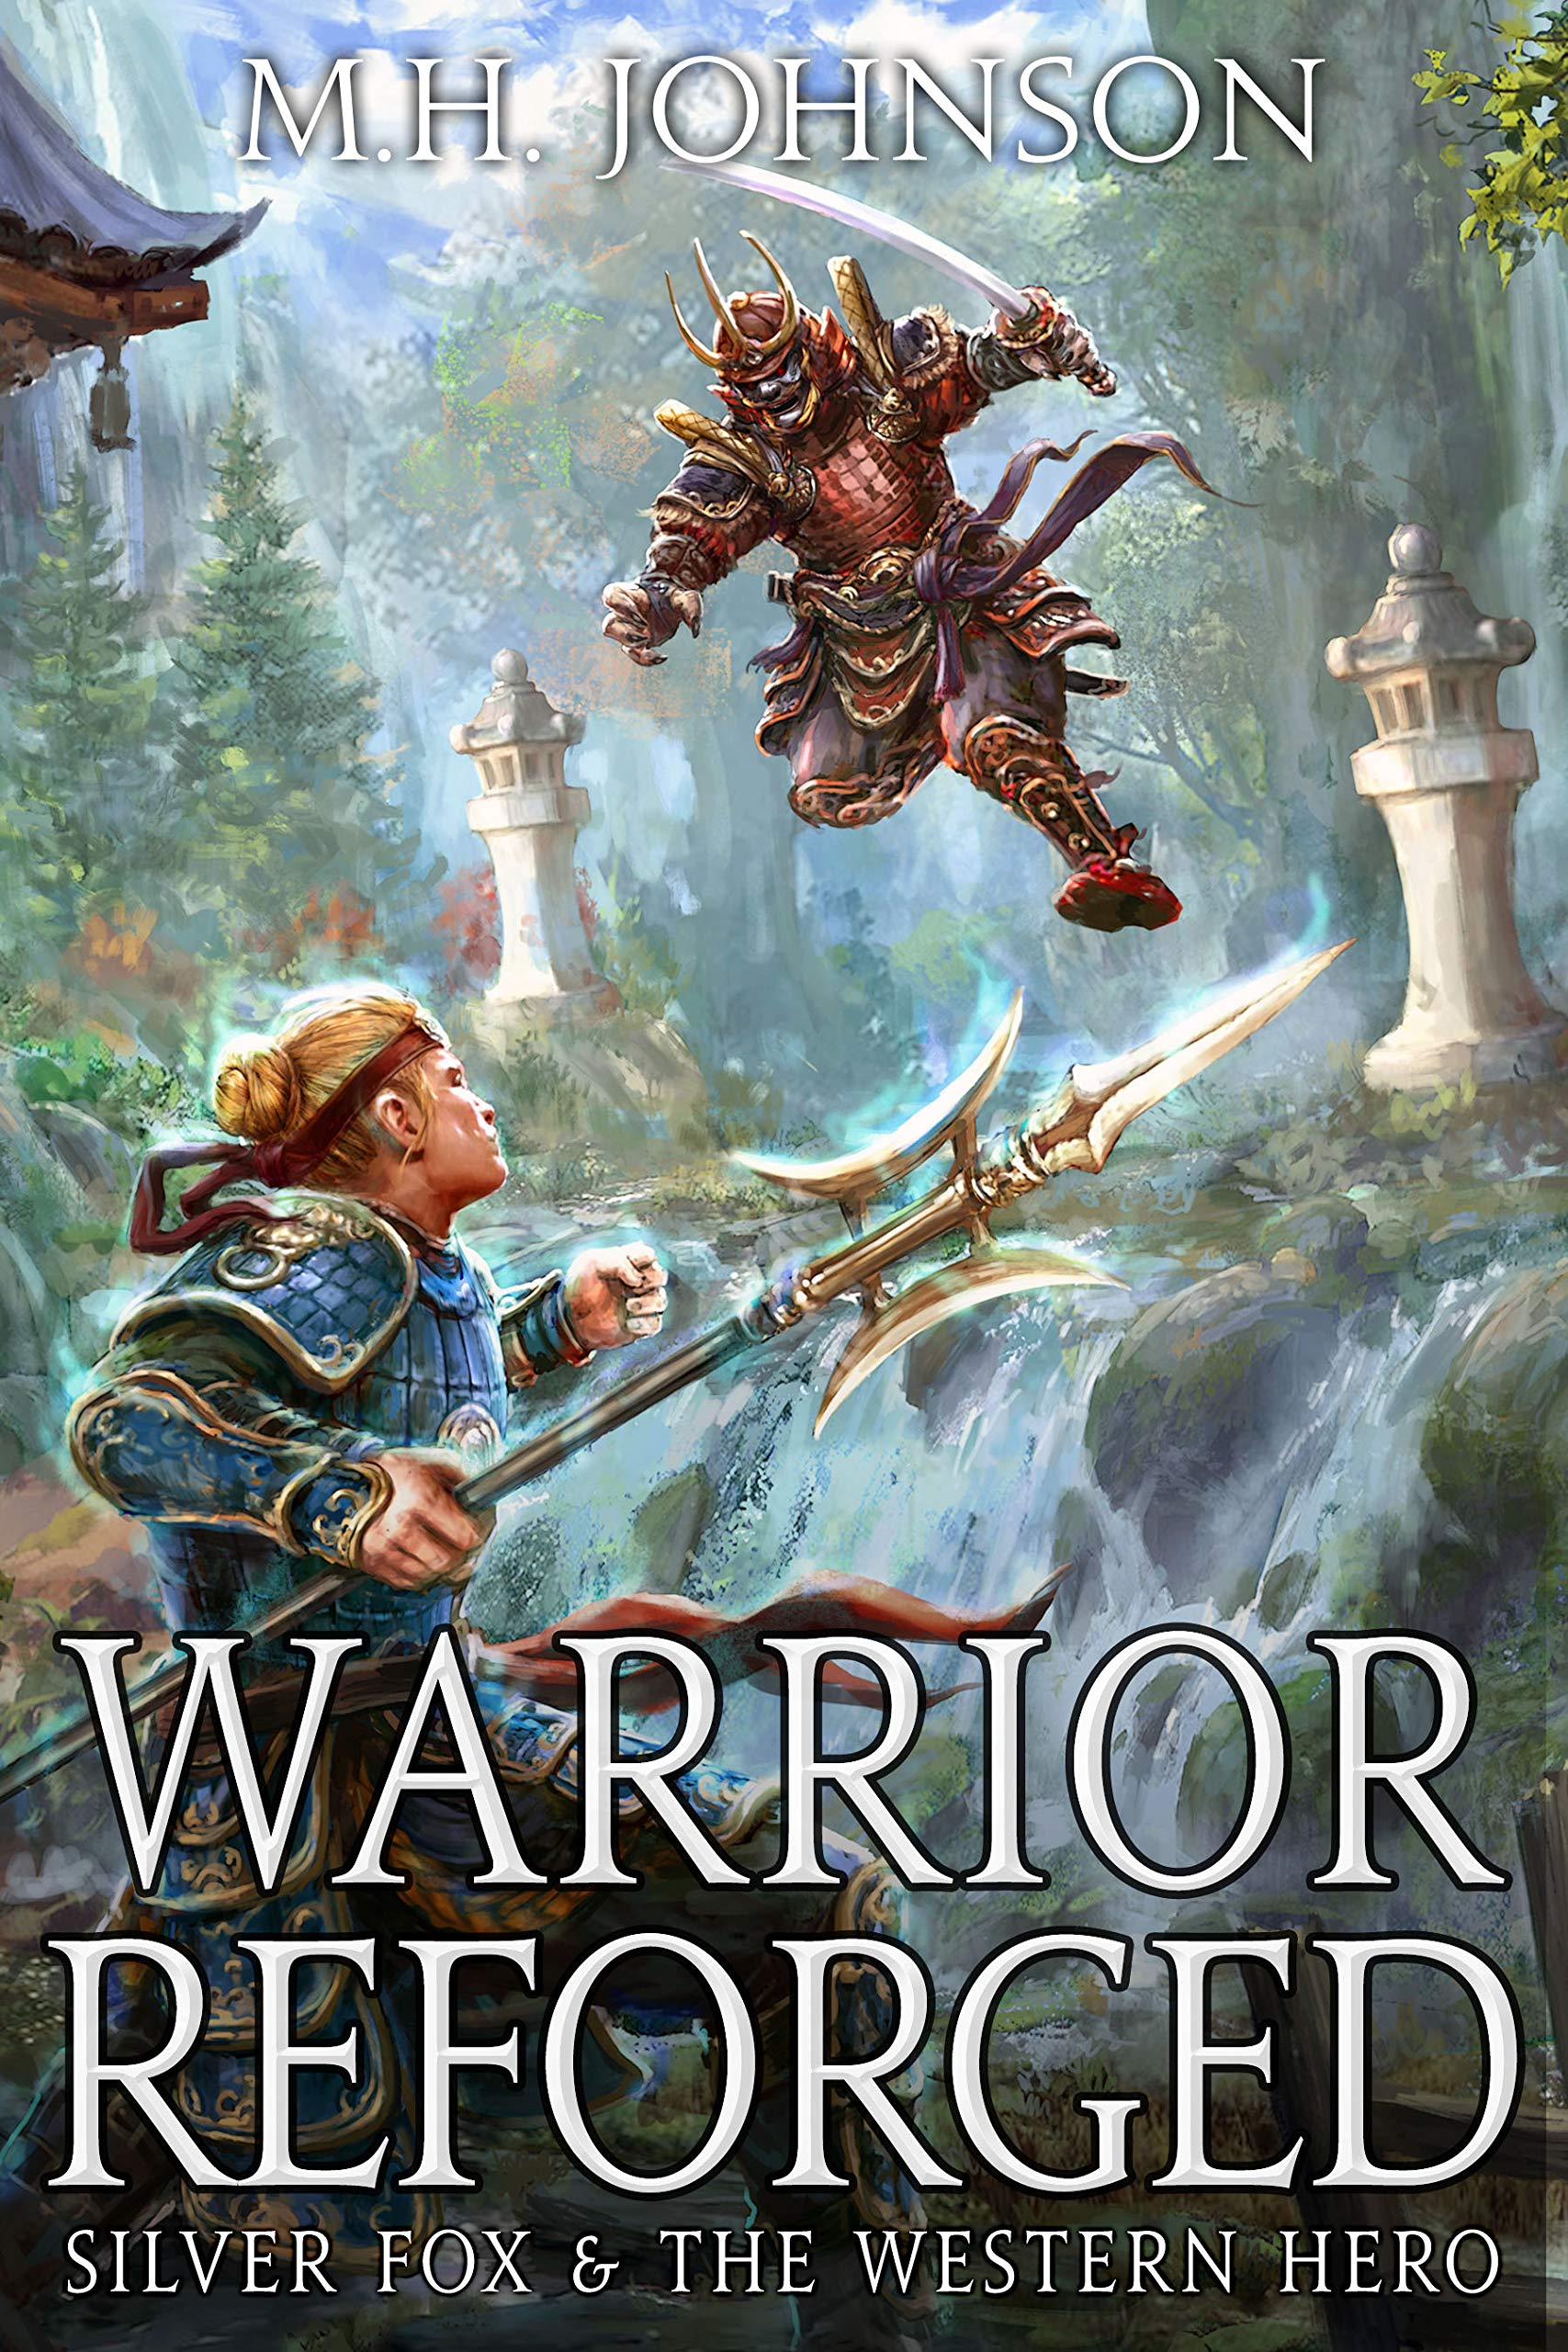 Silver Fox & The Western Hero: Warrior Reforged: A LitRPG/Wuxia Novel - Book 2